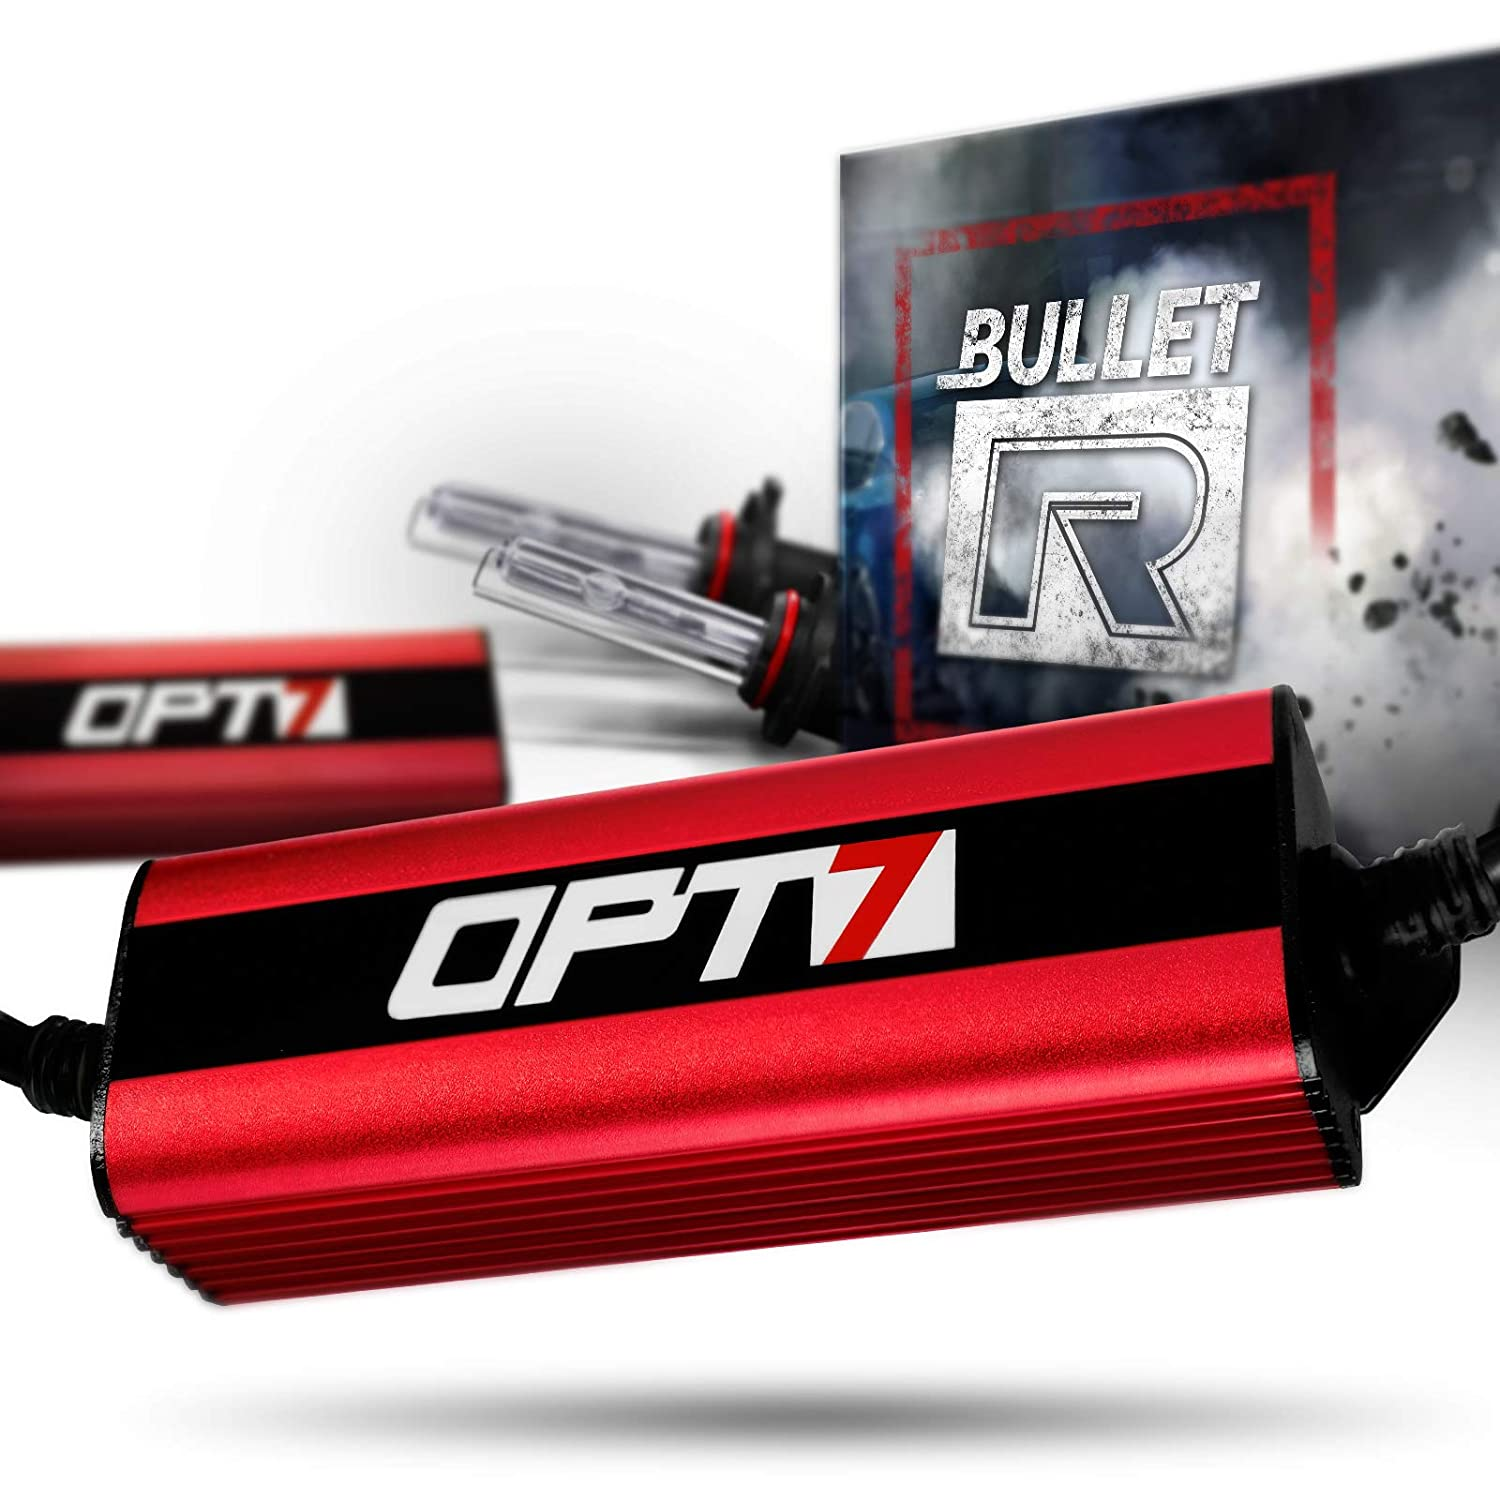 OPT7 Bullet-R H13 Bi-Xenon HID Kit - 3X Brighter - 4X Longer Life - All Bulb Sizes and Colors - 2 Yr Warranty [8000K Ice Blue Light]